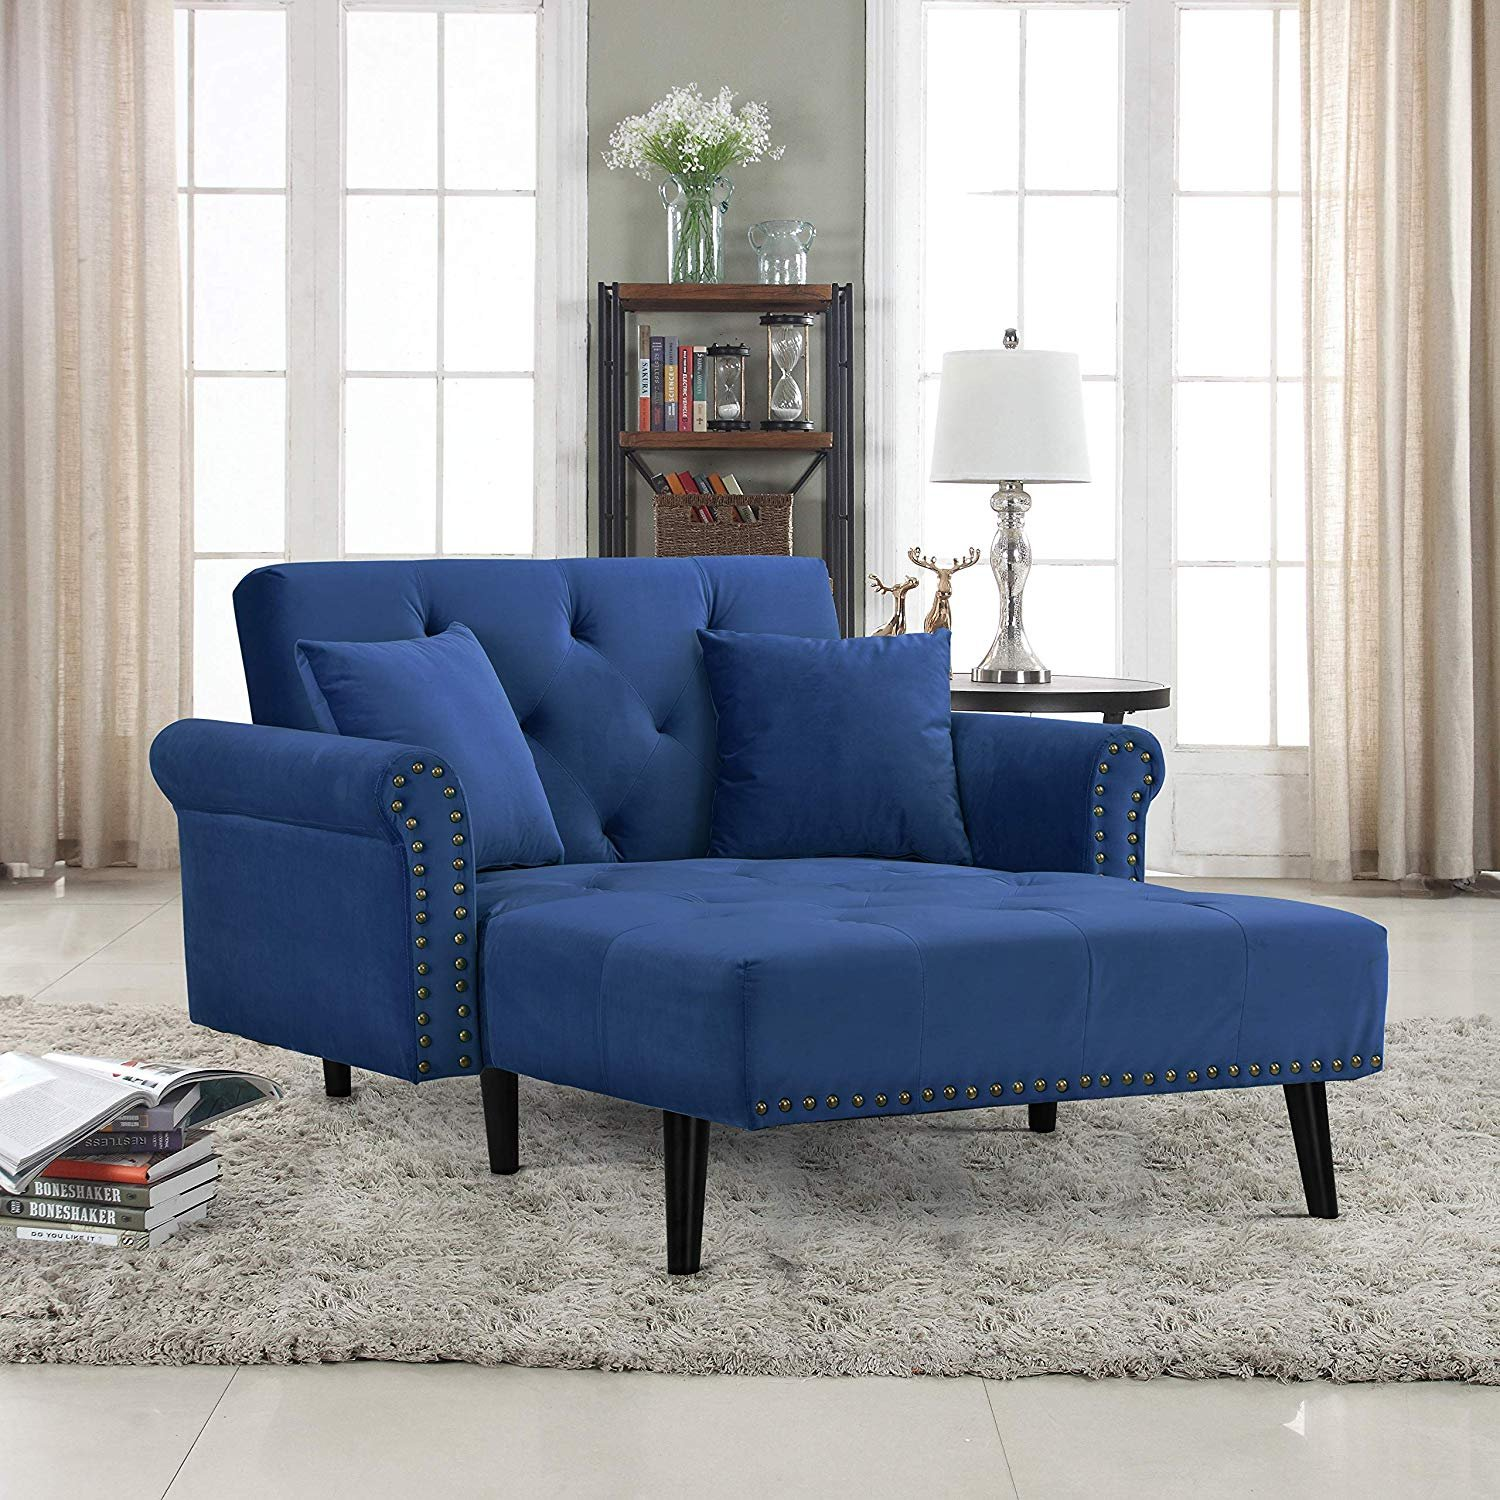 Modern Velvet Fabric Recliner Sleeper Chaise Lounge - Futon Sleeper Single Seater with Nailhead Trim (Navy)